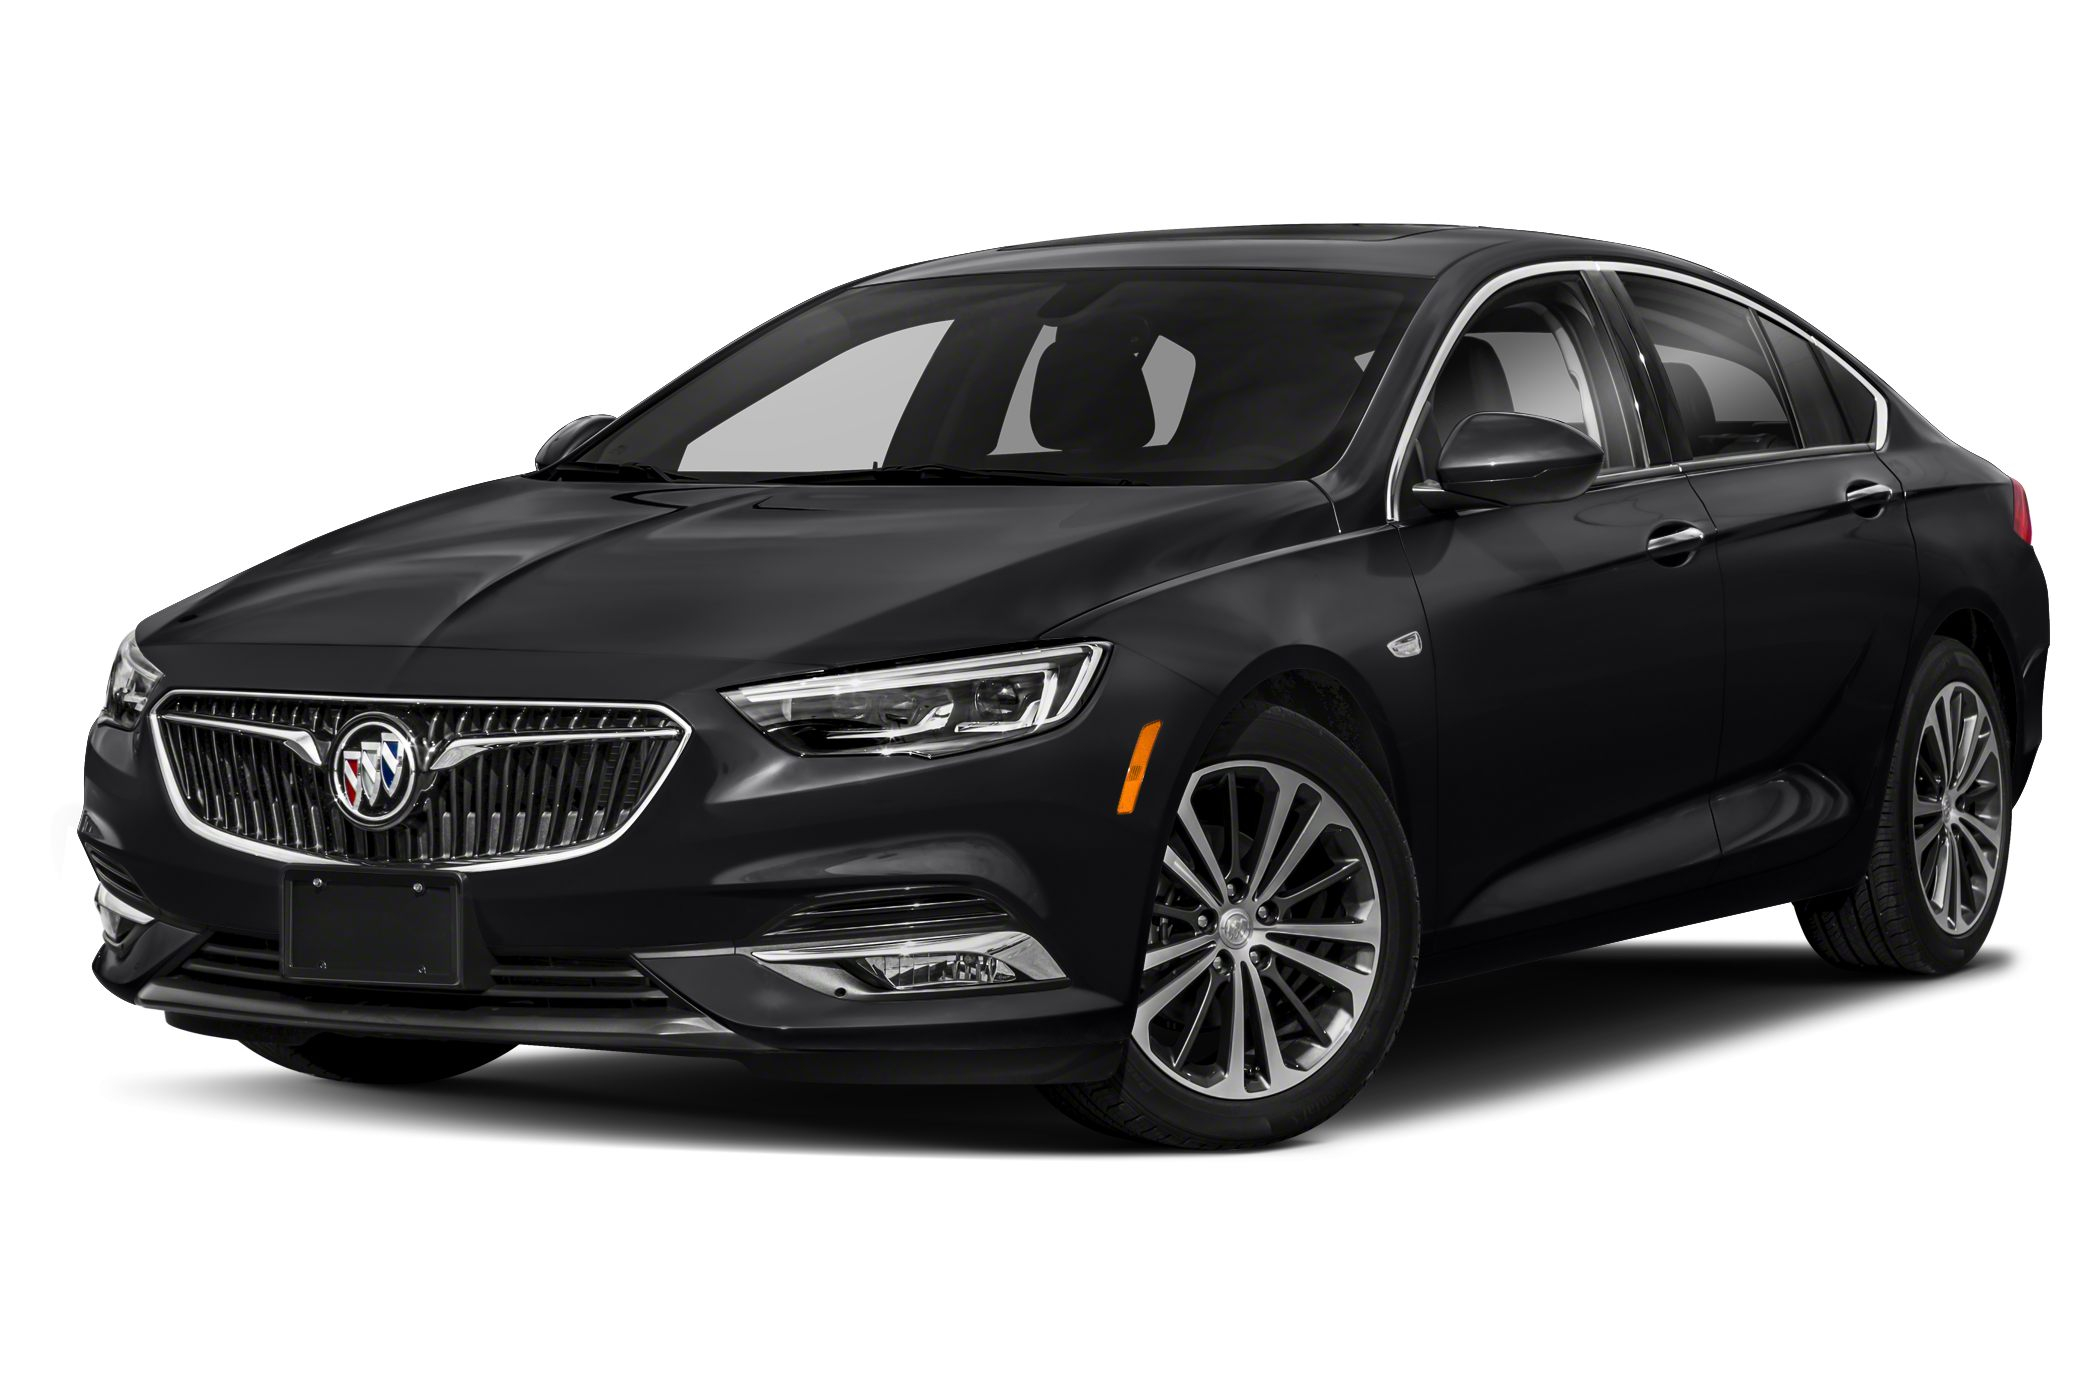 2019 Buick Regal Gs Review | Performance, Handling And 2022 Buick Regal Awd, Dimensions, Price